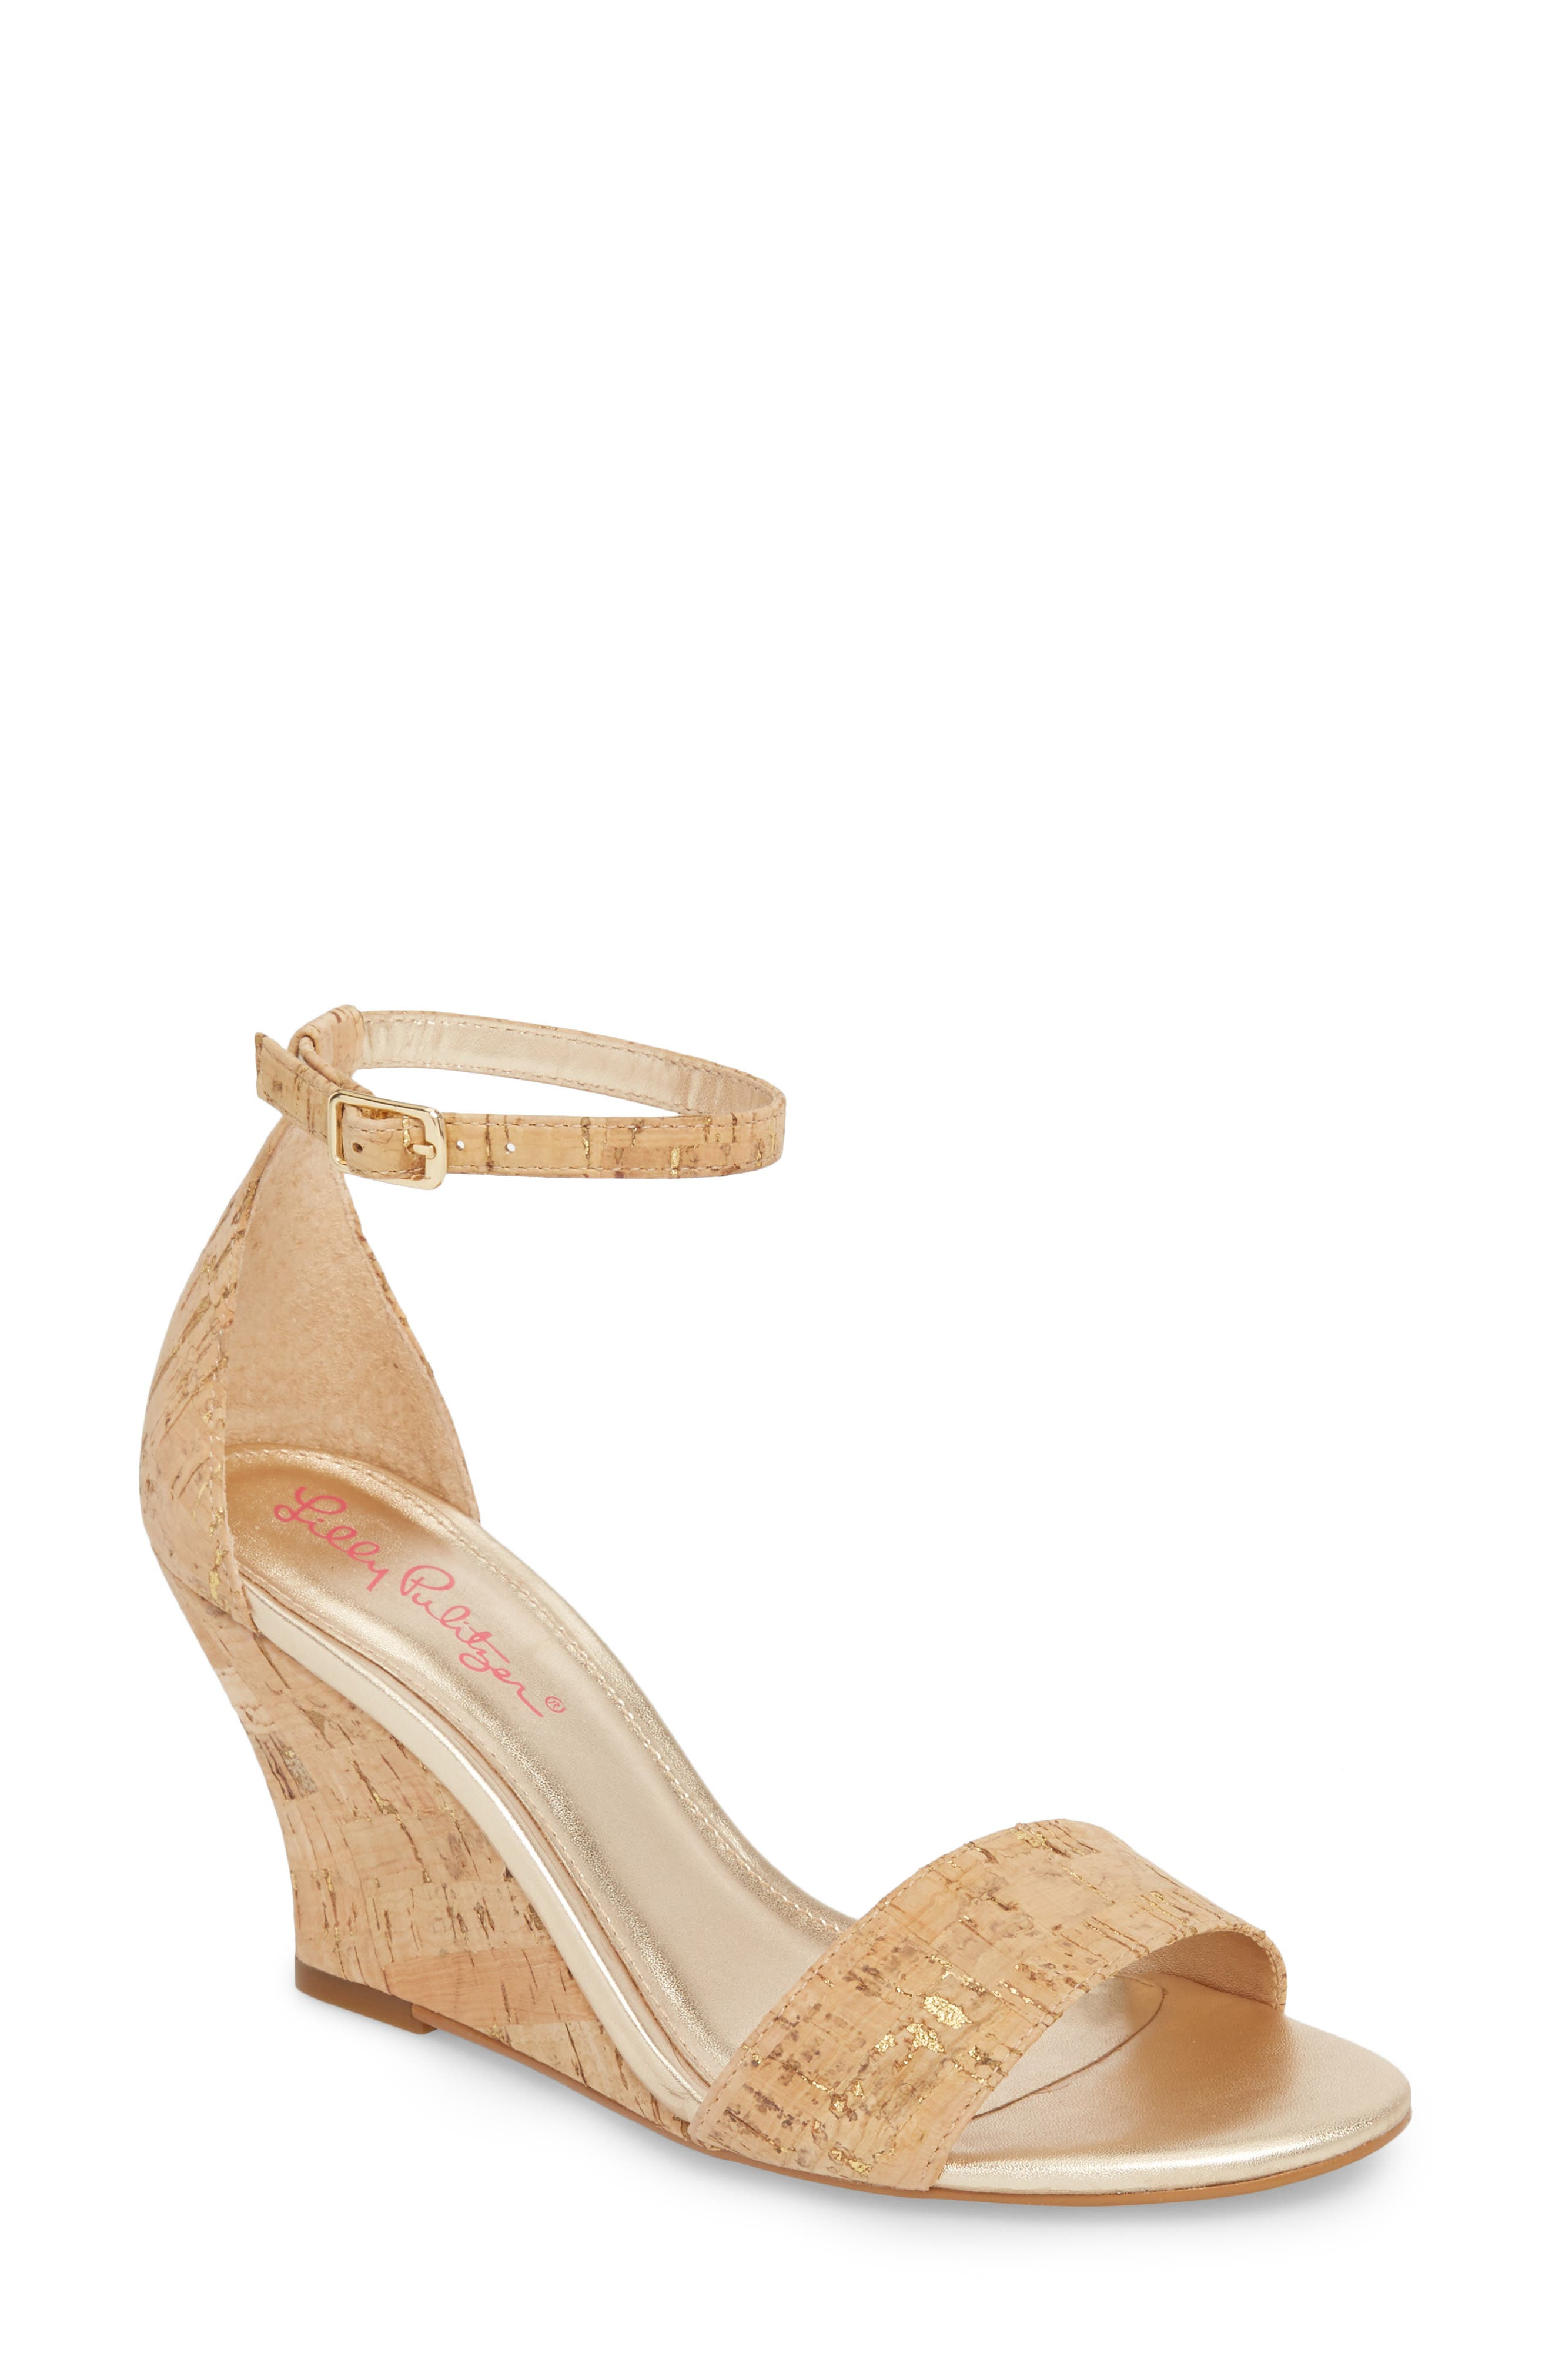 5afce5578b0 Lilly Pulitzer® Wedges for Women   Nordstrom